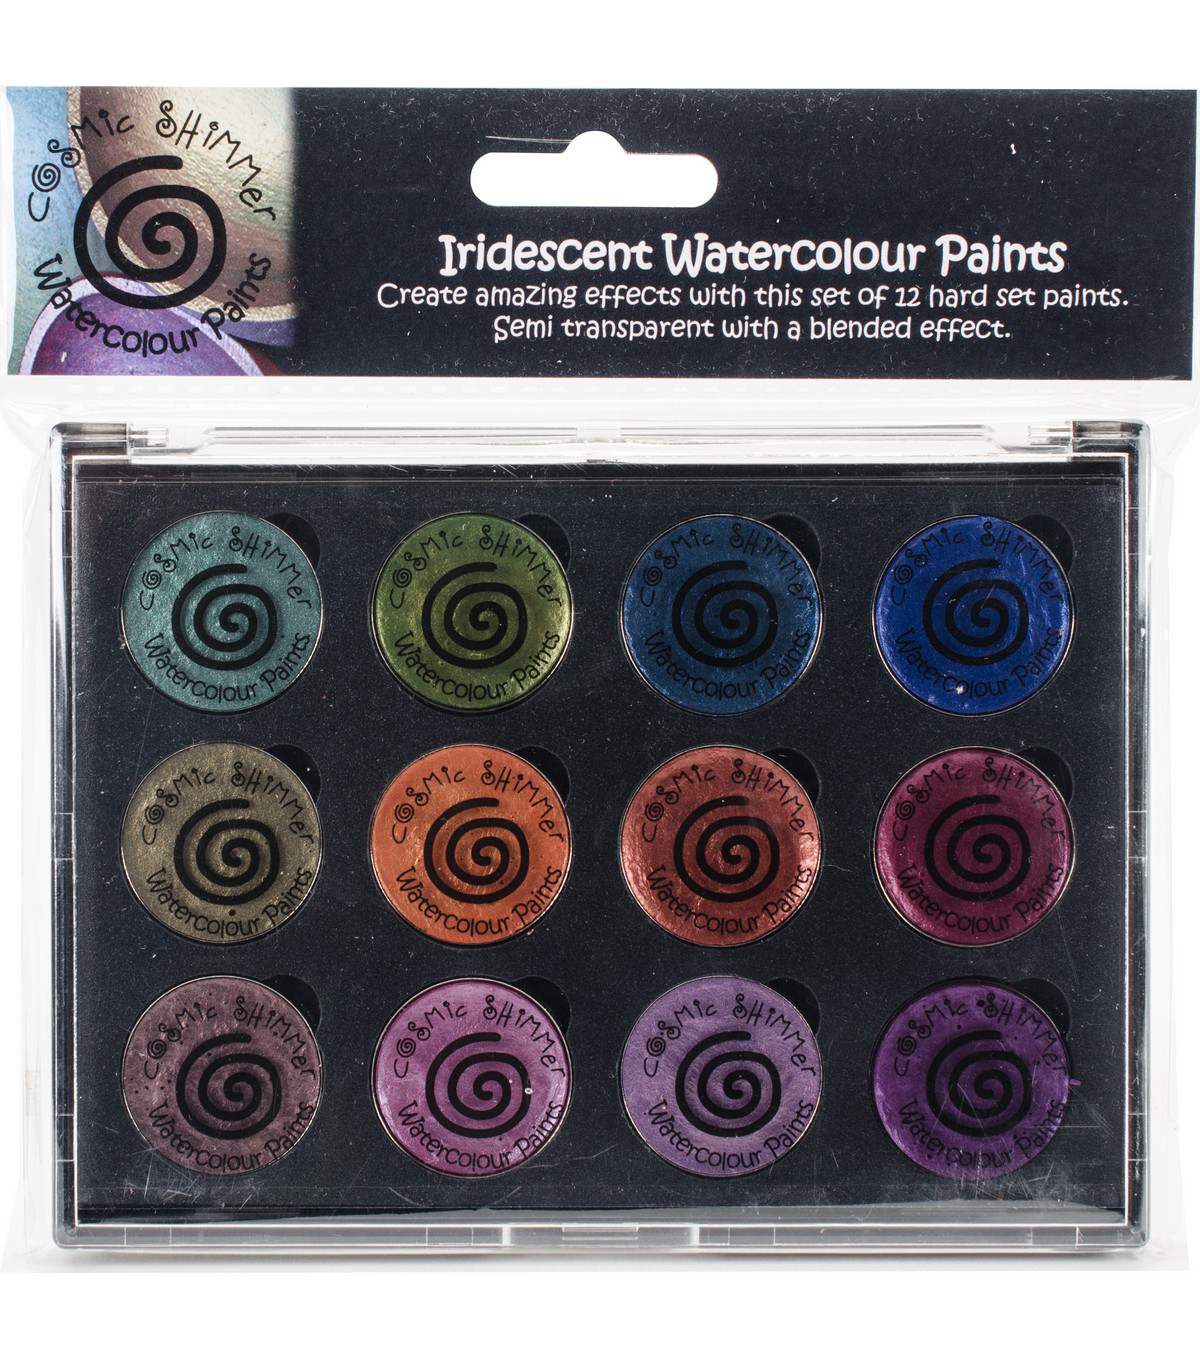 Cosmic Shimmer Watercolour Paint Pallet Set-Iridescent Antique Shades